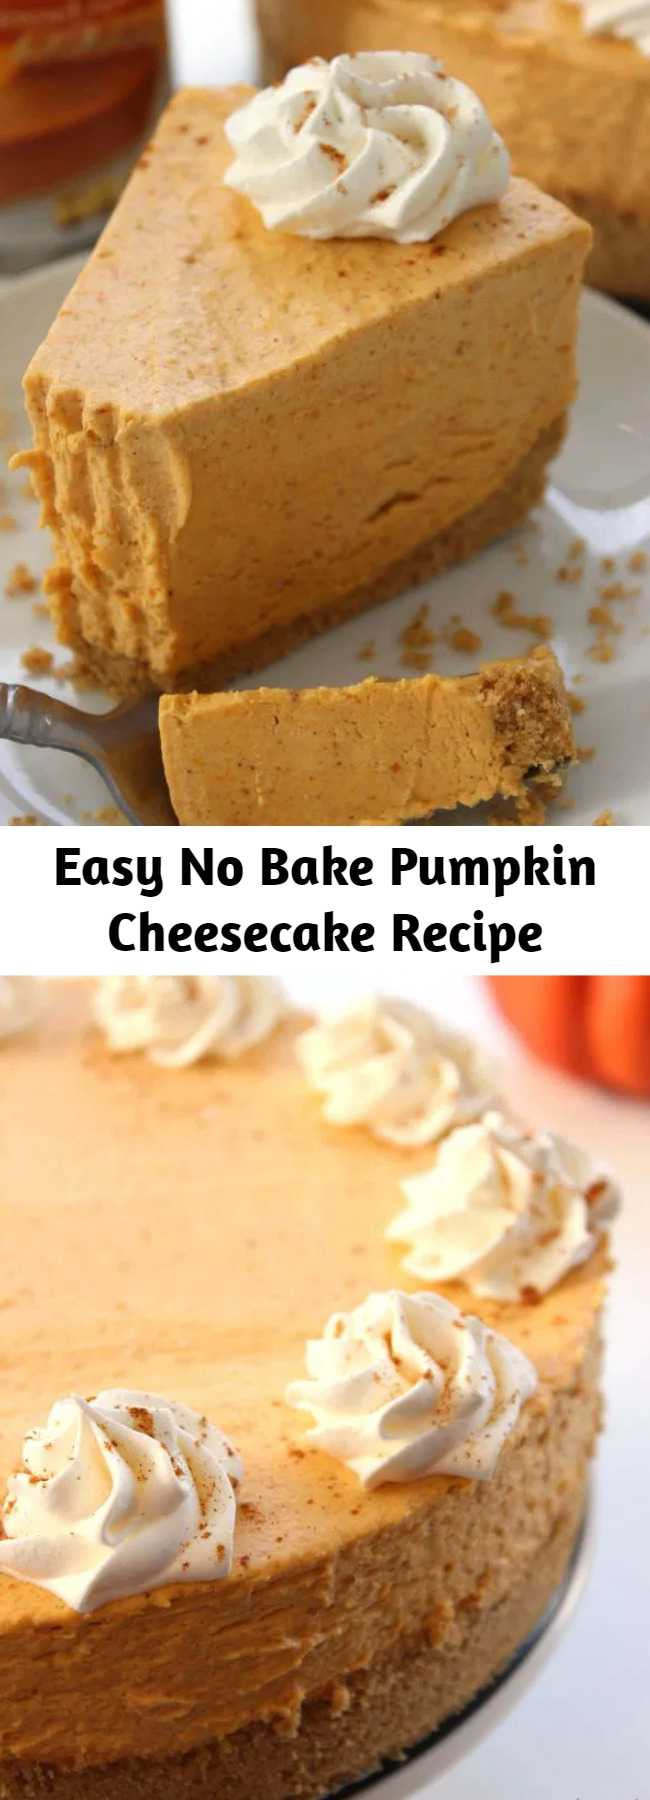 Easy No Bake Pumpkin Cheesecake Recipe - This No Bake Pumpkin Cheesecake will make for a super easy fall and Holiday dessert. With just a few ingredients and very little time, you can have a pumpkin dessert that looks and tastes like a million bucks.